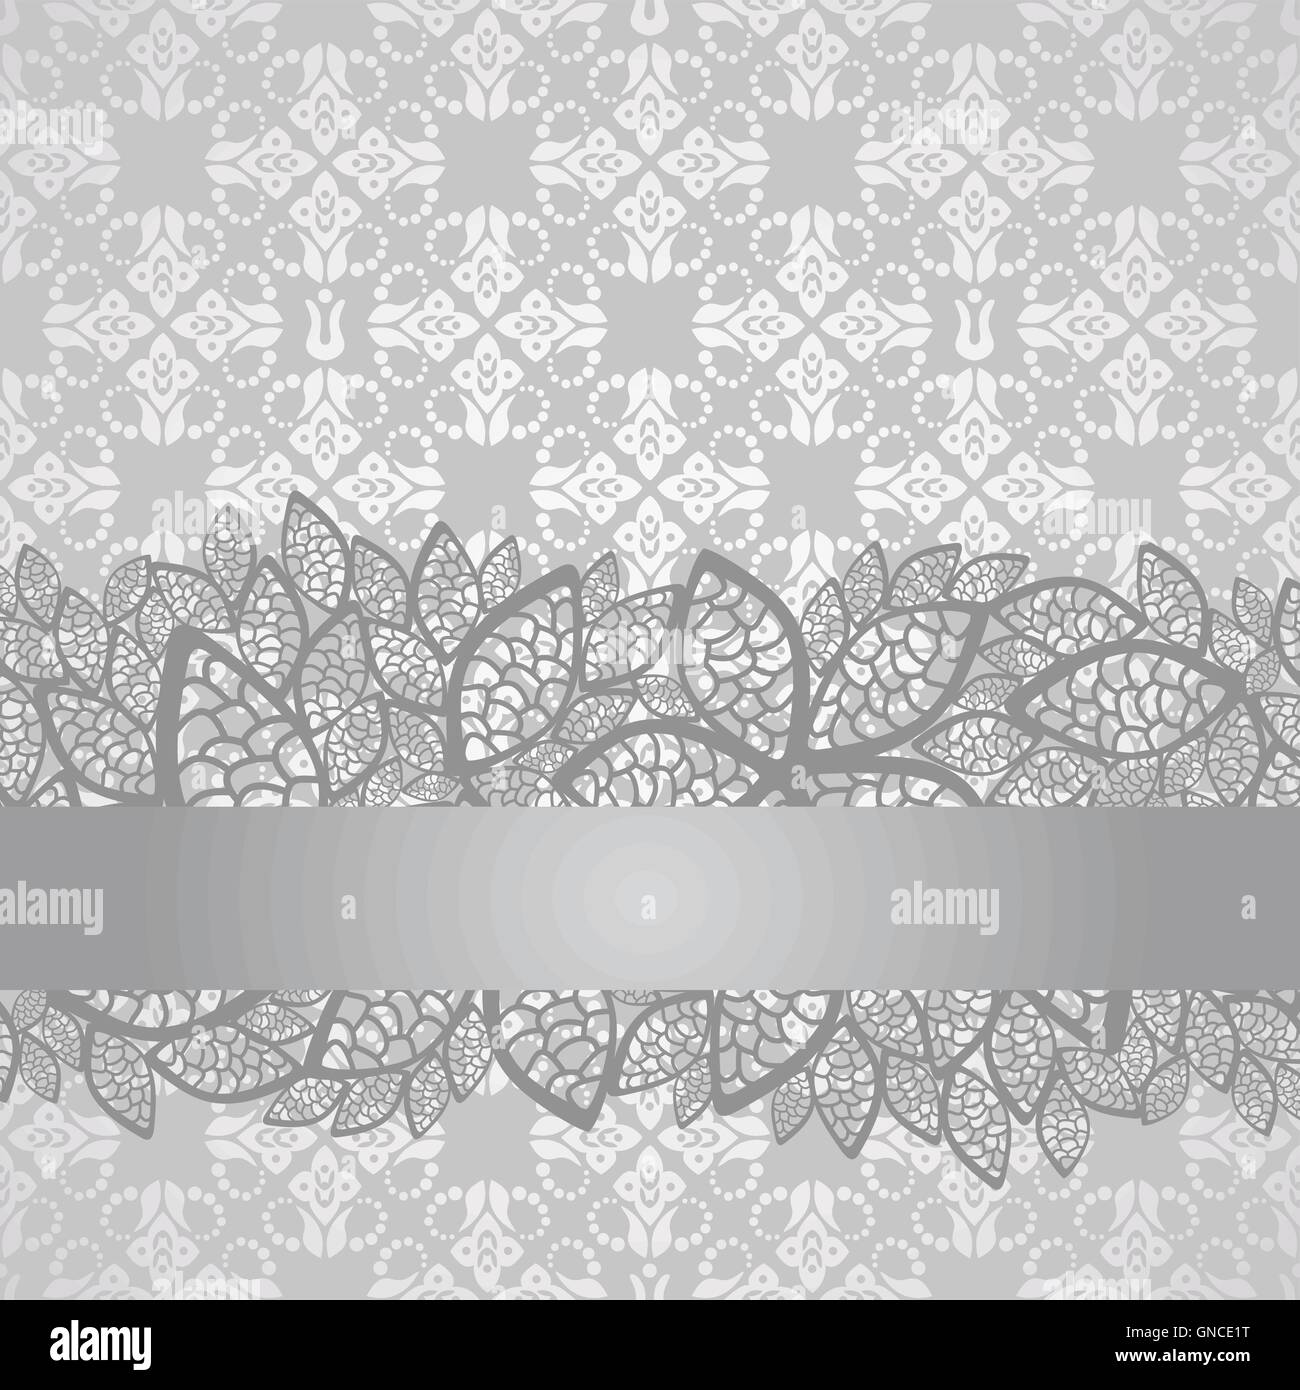 Silver Lace Border On Floral Silver Wallpaper Stock Vector